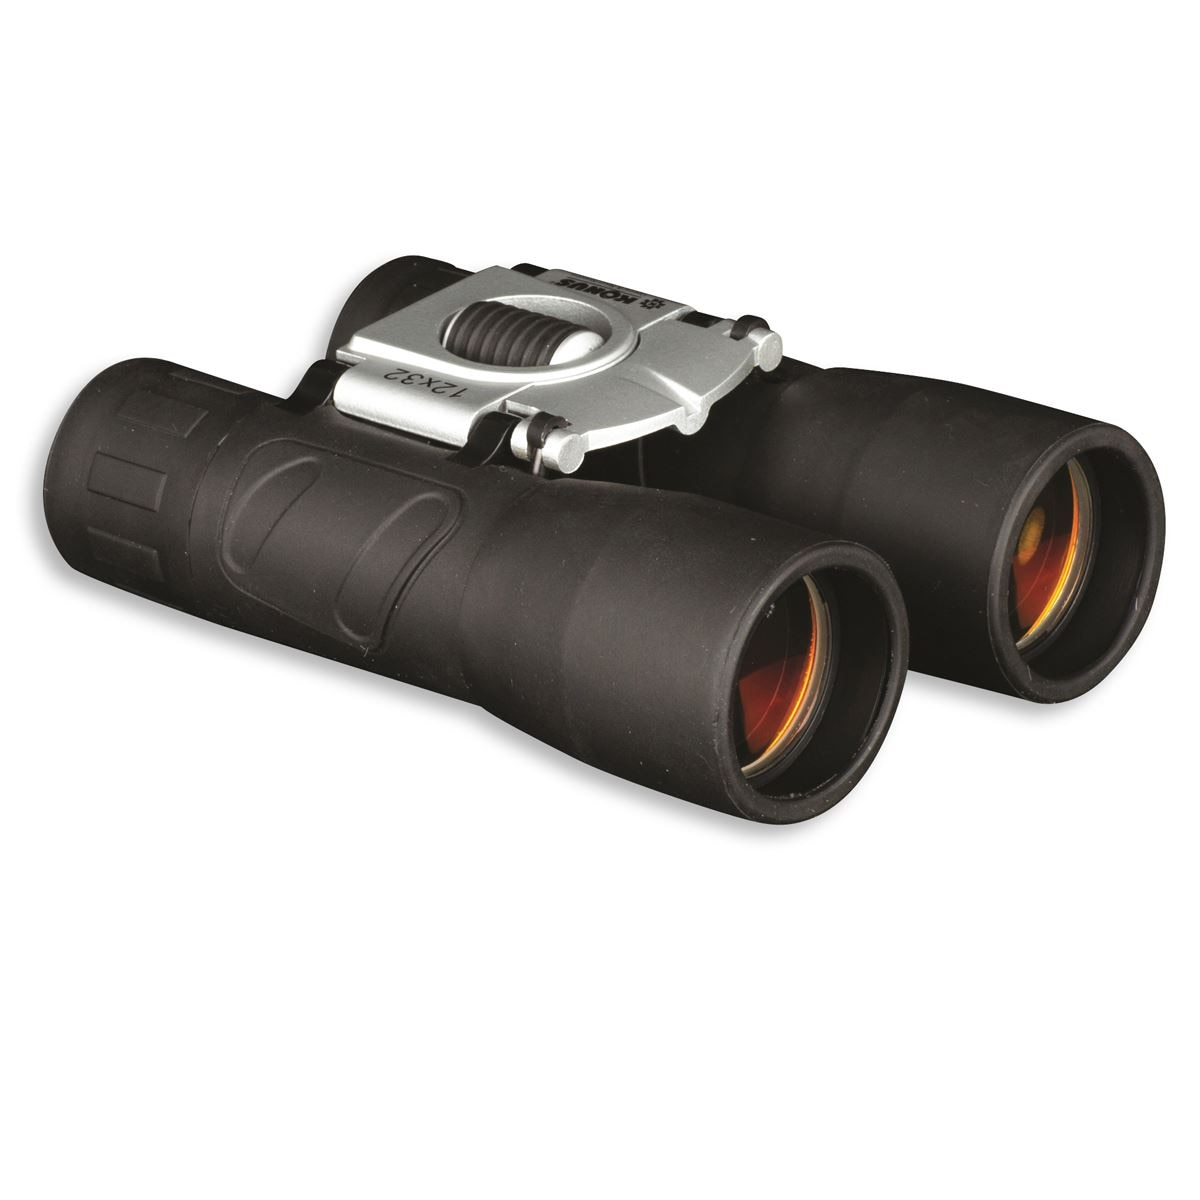 Binocular Konus Basic 10x25mm